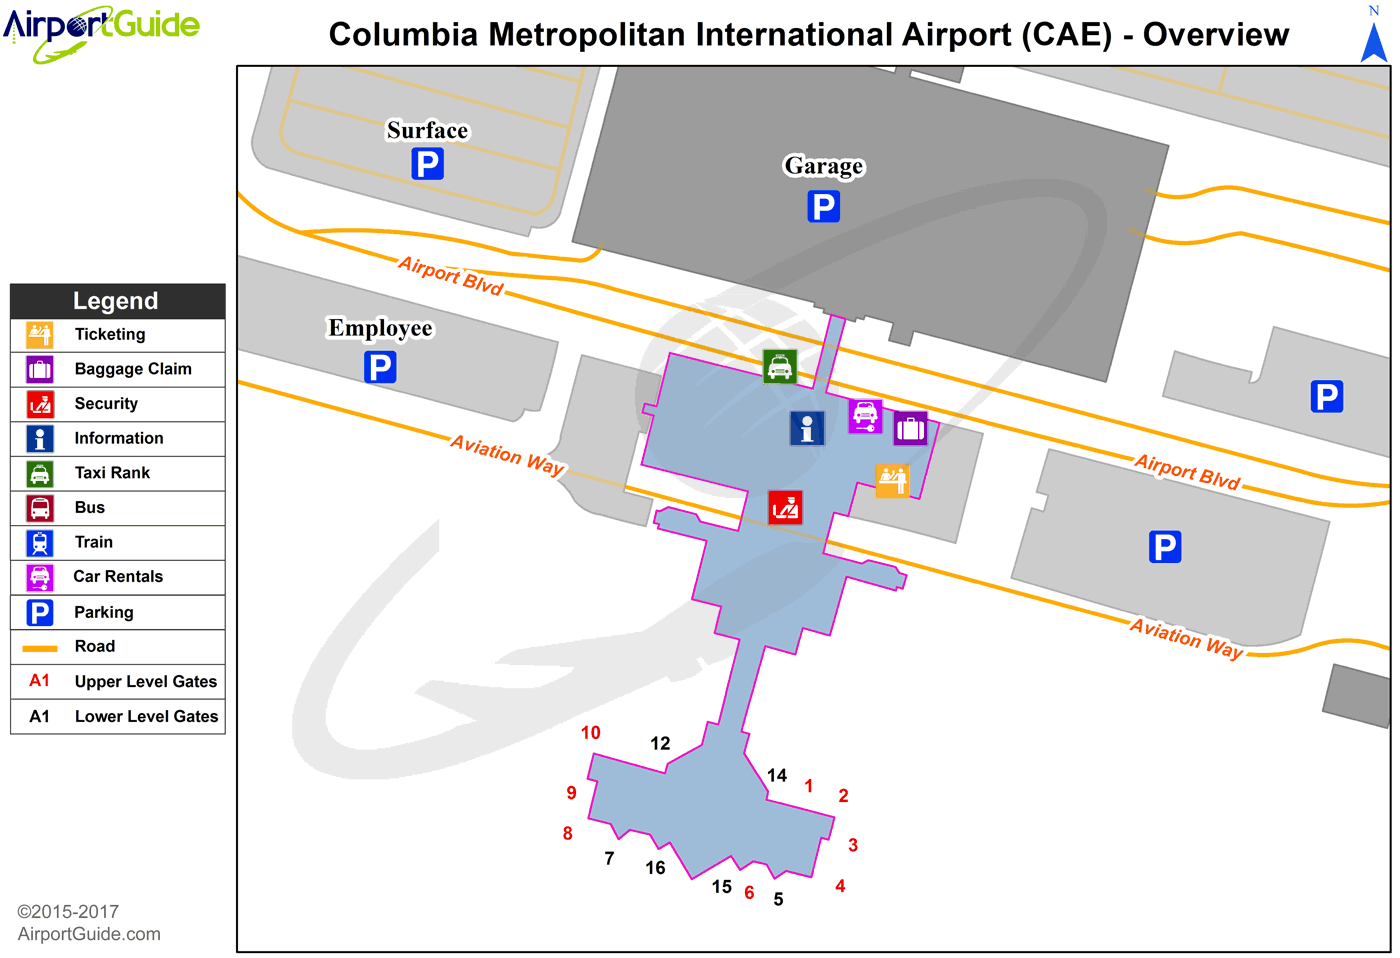 Columbia - Columbia Metropolitan (CAE) Airport Terminal Map - Overview